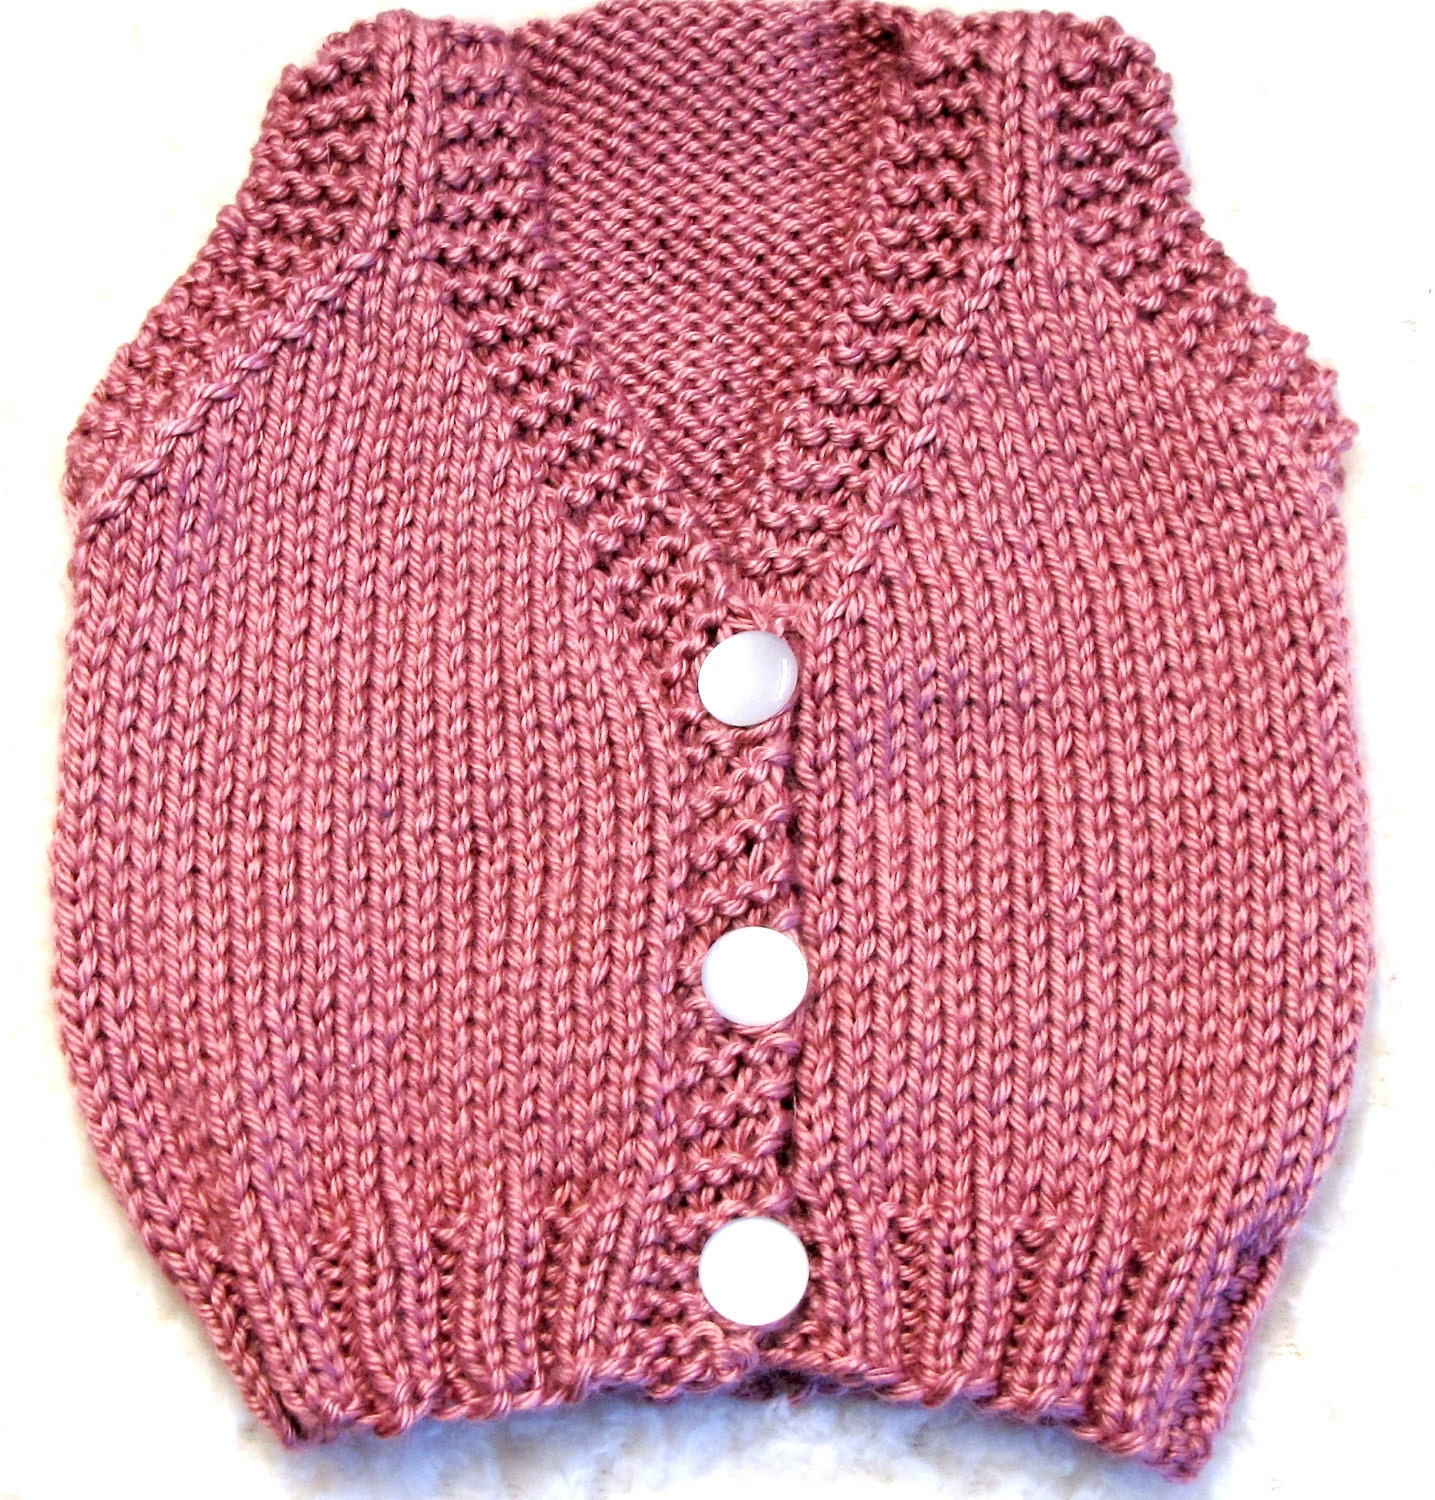 Baby Waistcoat Knitting Pattern : Baby Vest Knitting Pattern SMALL PDF